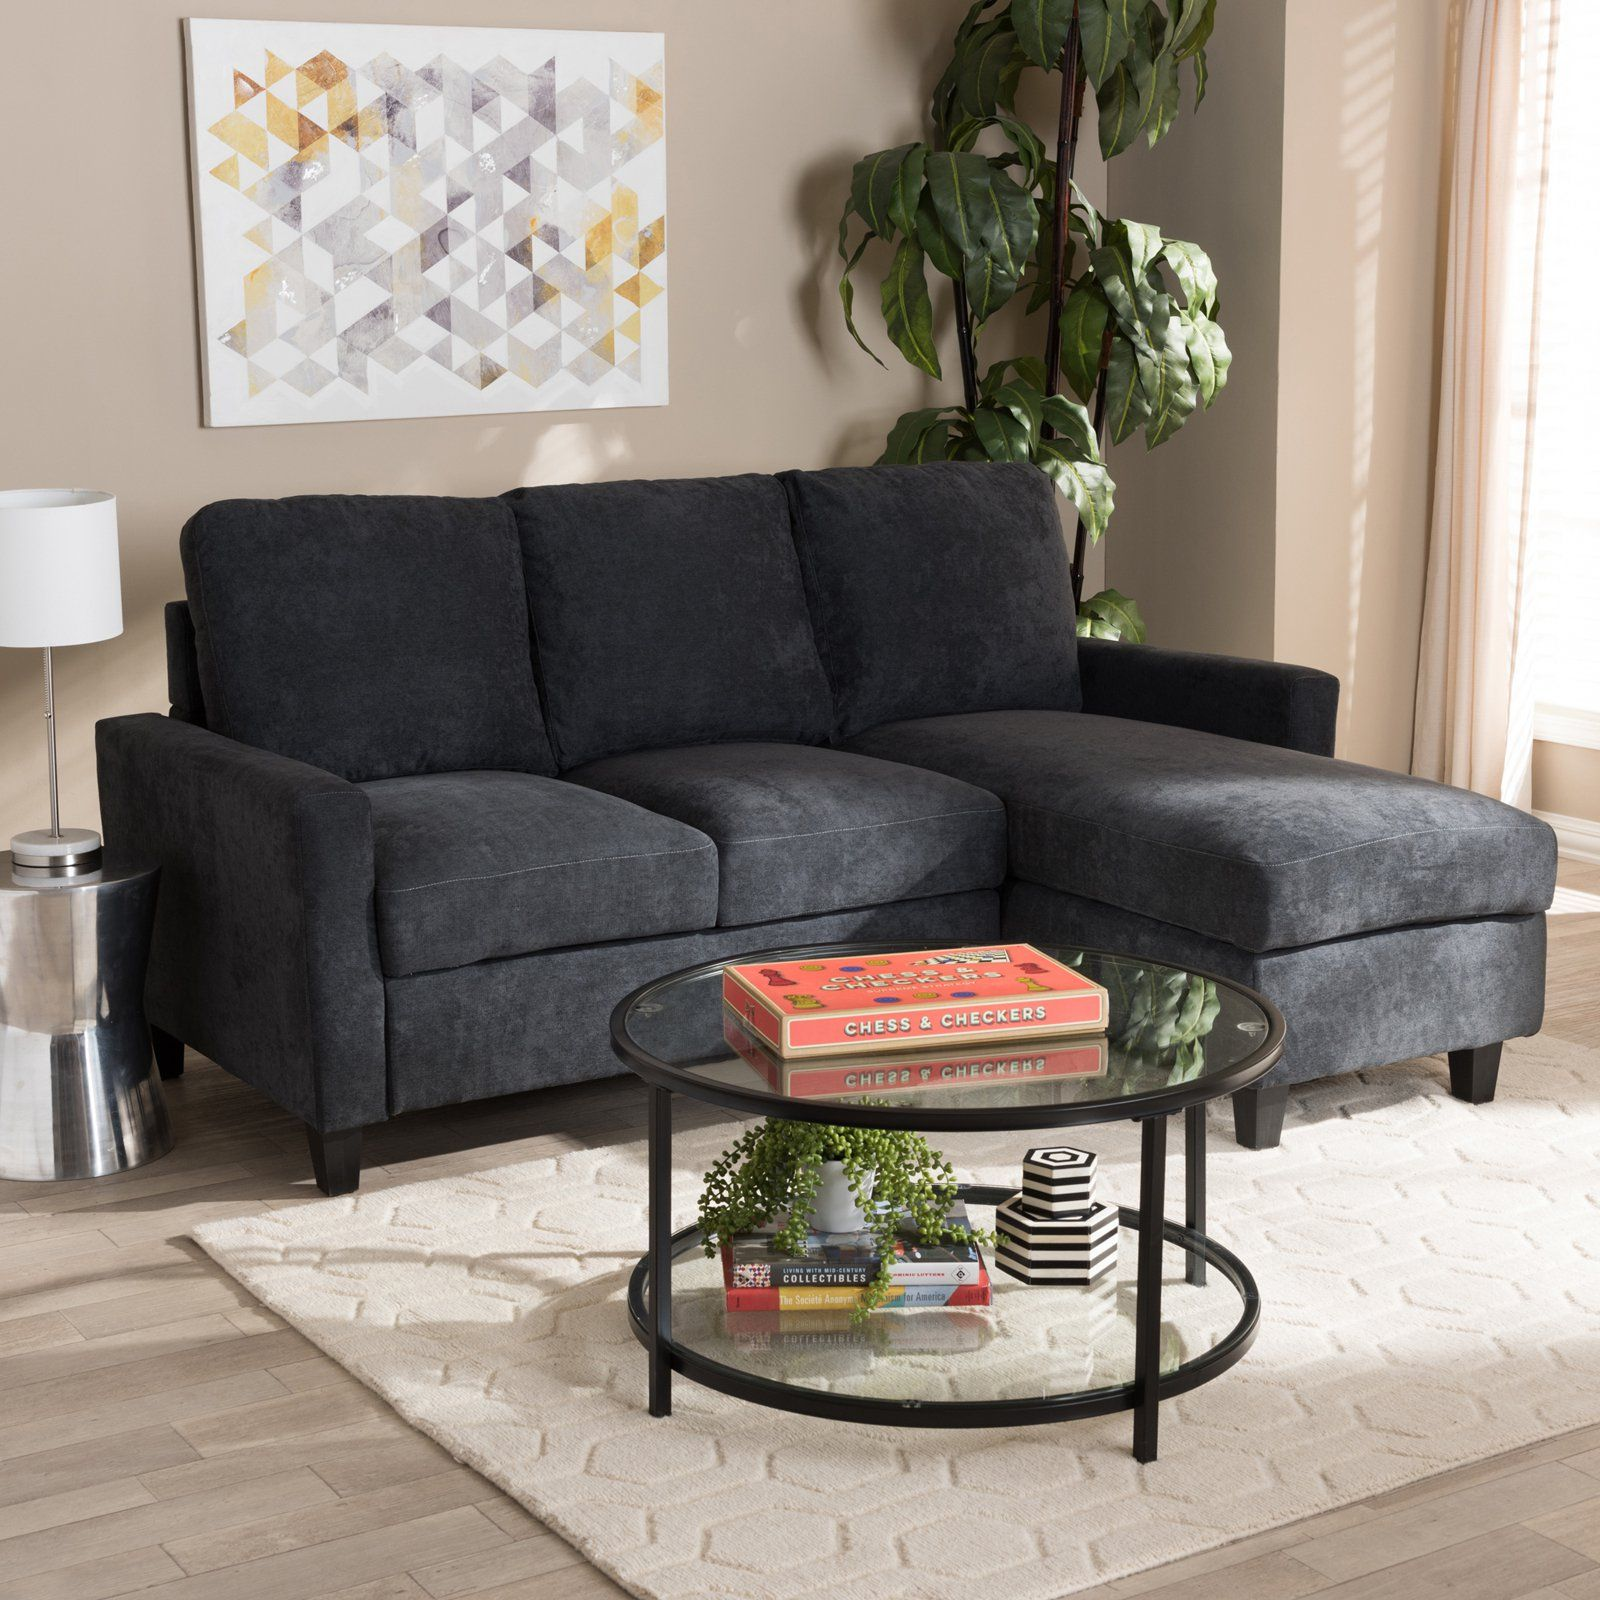 Baxton Studio Greyson Modern And Contemporary Fabric Upholstered